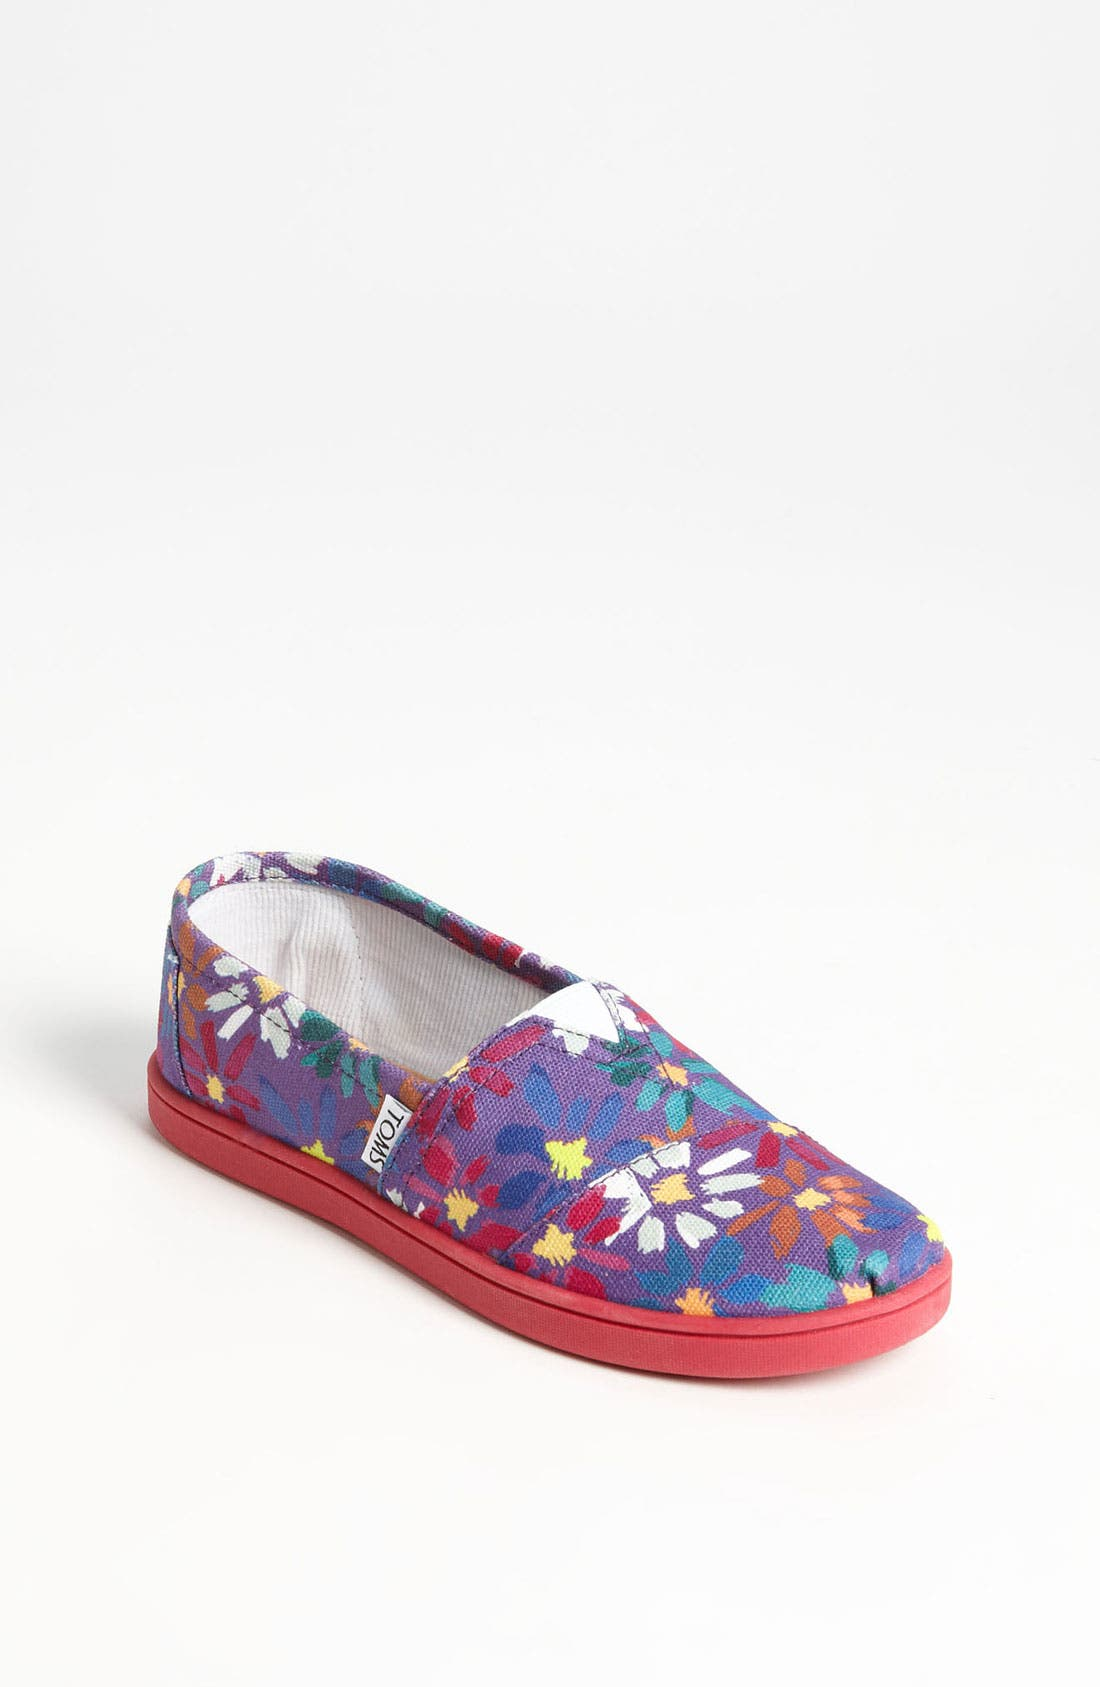 Alternate Image 1 Selected - TOMS 'Classic - Youth' Slip-On (Toddler, Little Kid & Big Kid)